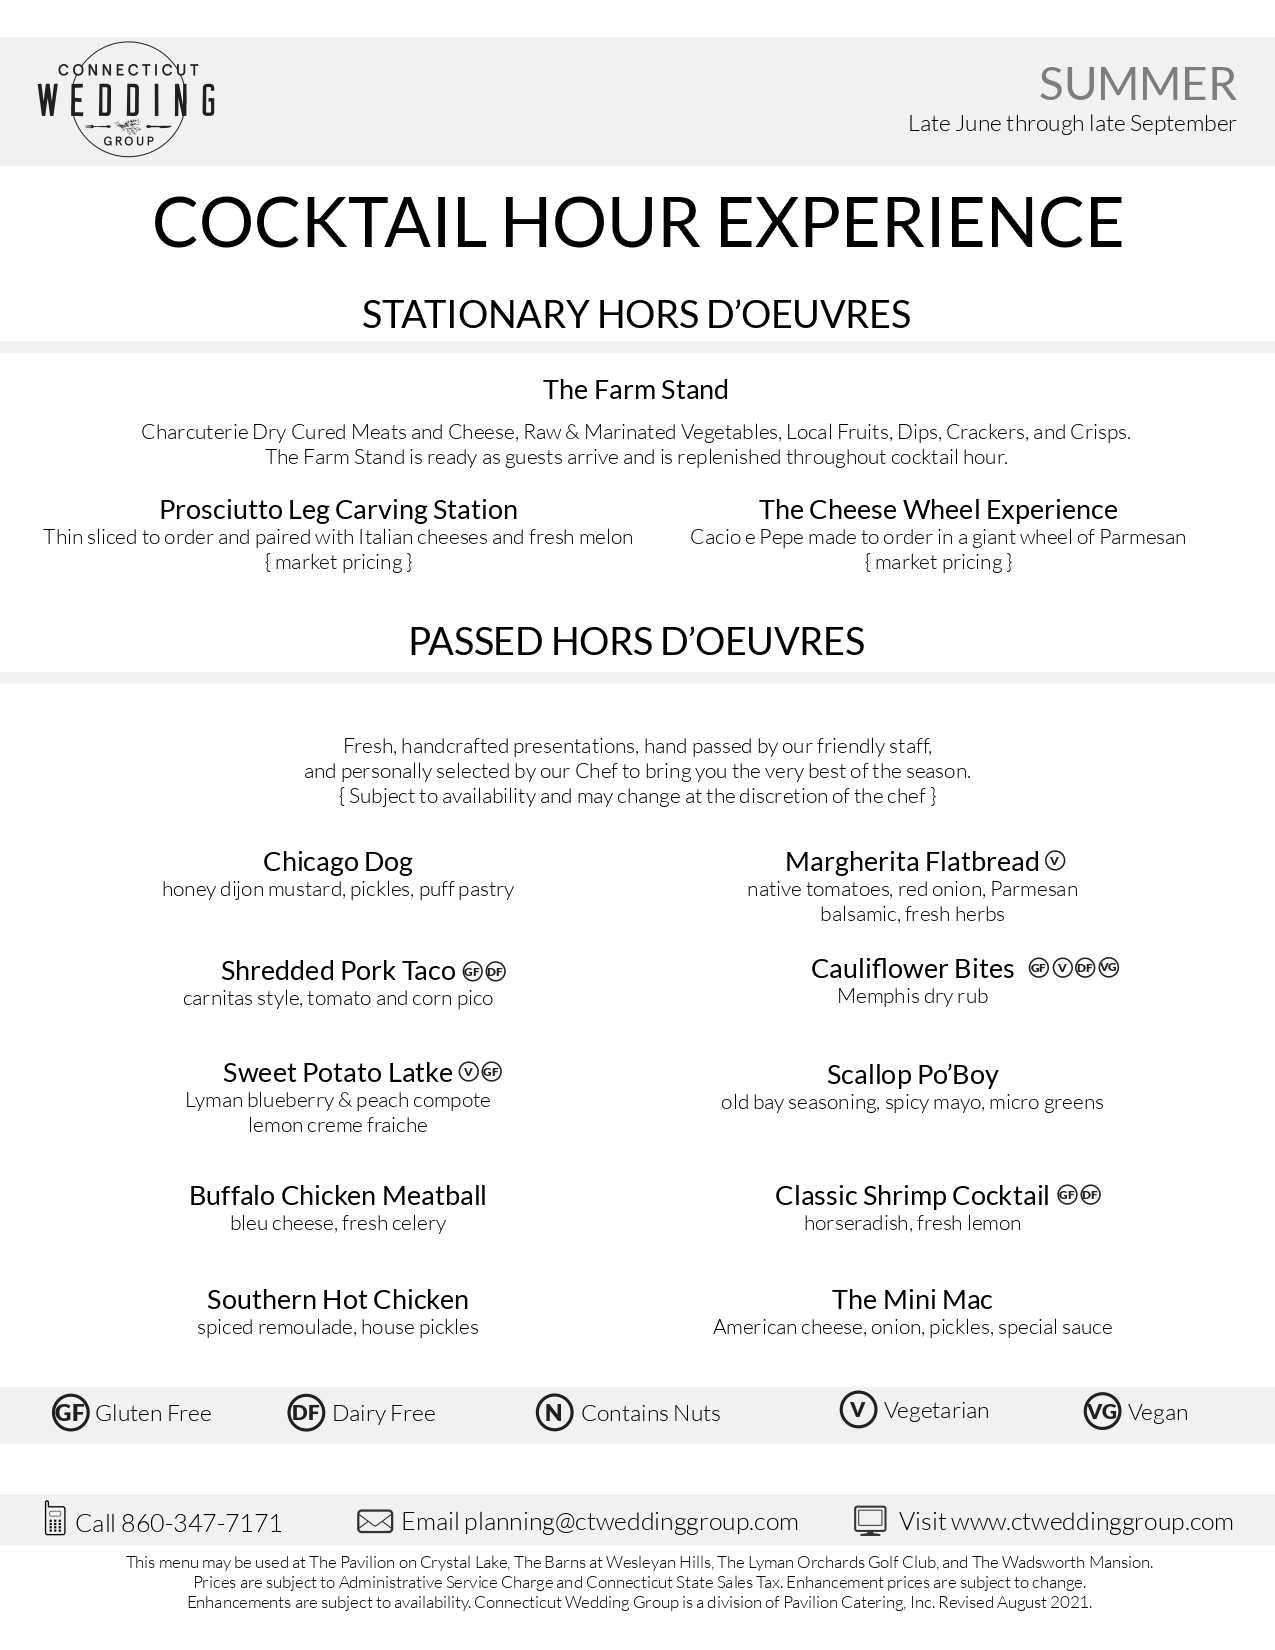 Summer-Cocktail-Hour-Culinary-Experiences-2022_page-1